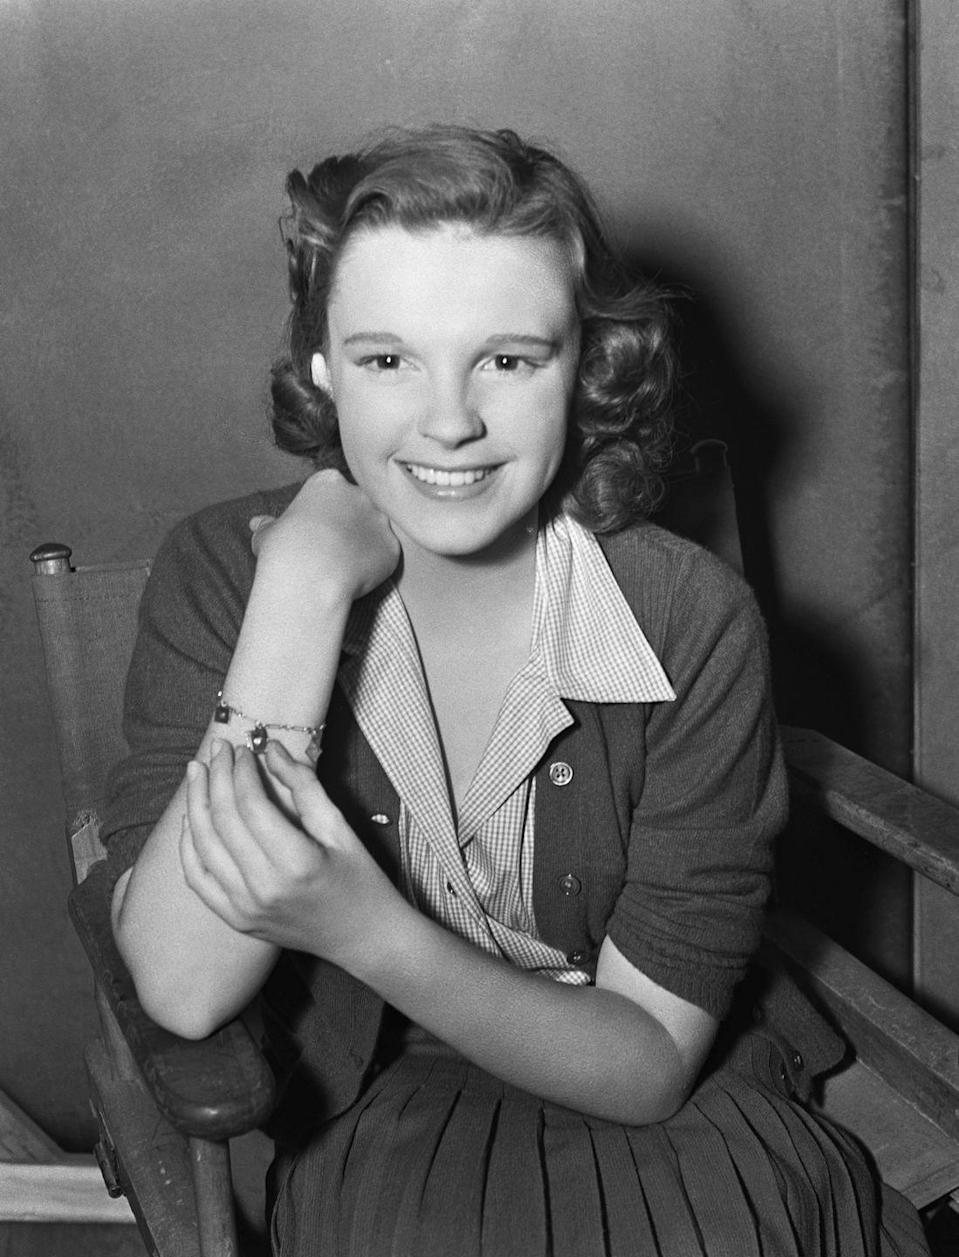 "<p>Minimal child labor laws meant that studios could require children to work just as much as their adult counterparts. For Judy Garland, that meant working six days per week and up to 18-hour shifts filled with singing and dancing. <a href=""https://timeline.com/hollywood-drugs-1930s-6b27a1404552"" rel=""nofollow noopener"" target=""_blank"" data-ylk=""slk:&quot;Pep pills&quot;"" class=""link rapid-noclick-resp"">""Pep pills""</a> (amphetamine uppers) gave her energy, and sleeping pills helped when she couldn't rest at night.</p>"